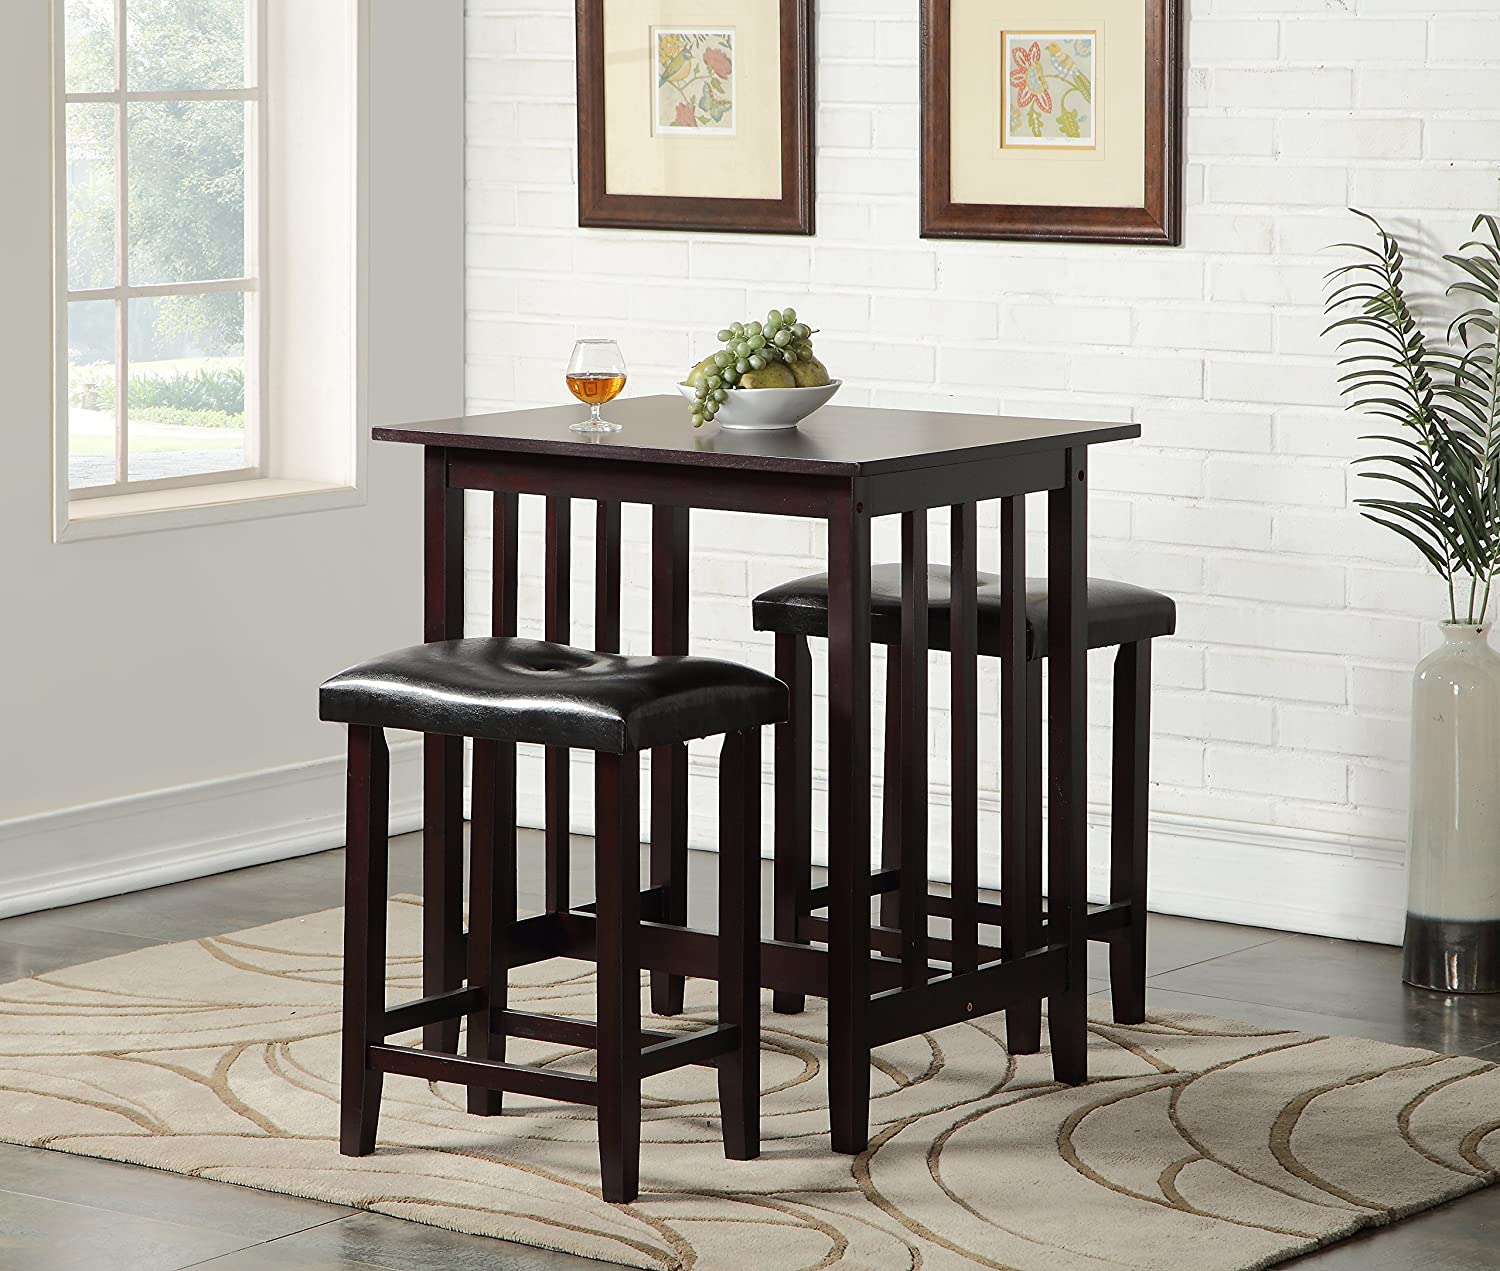 amazoncom roundhill furniture 3piece counter height dining set with saddleback stools black table u0026 chair sets